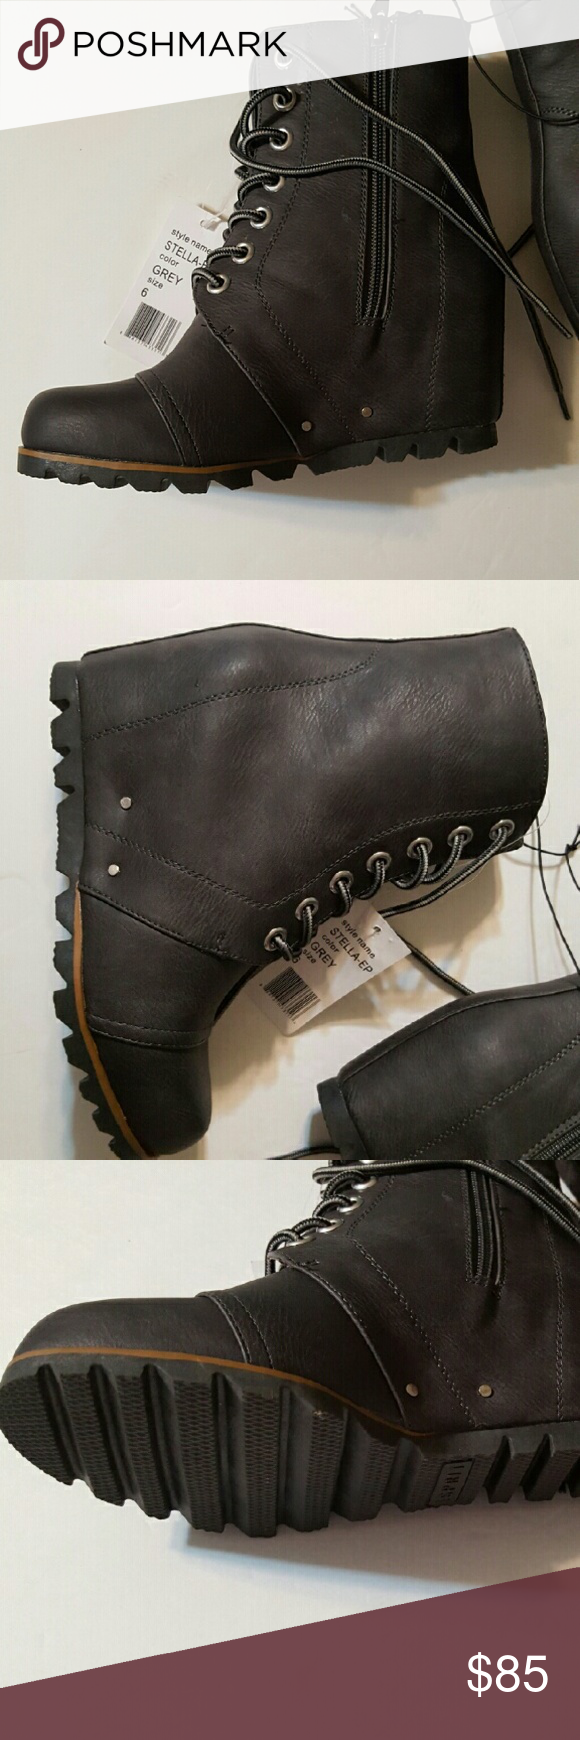 51282266012 Wedge boots Cute Esprit wedge boots. It s about 2 inches high. Looks just  like